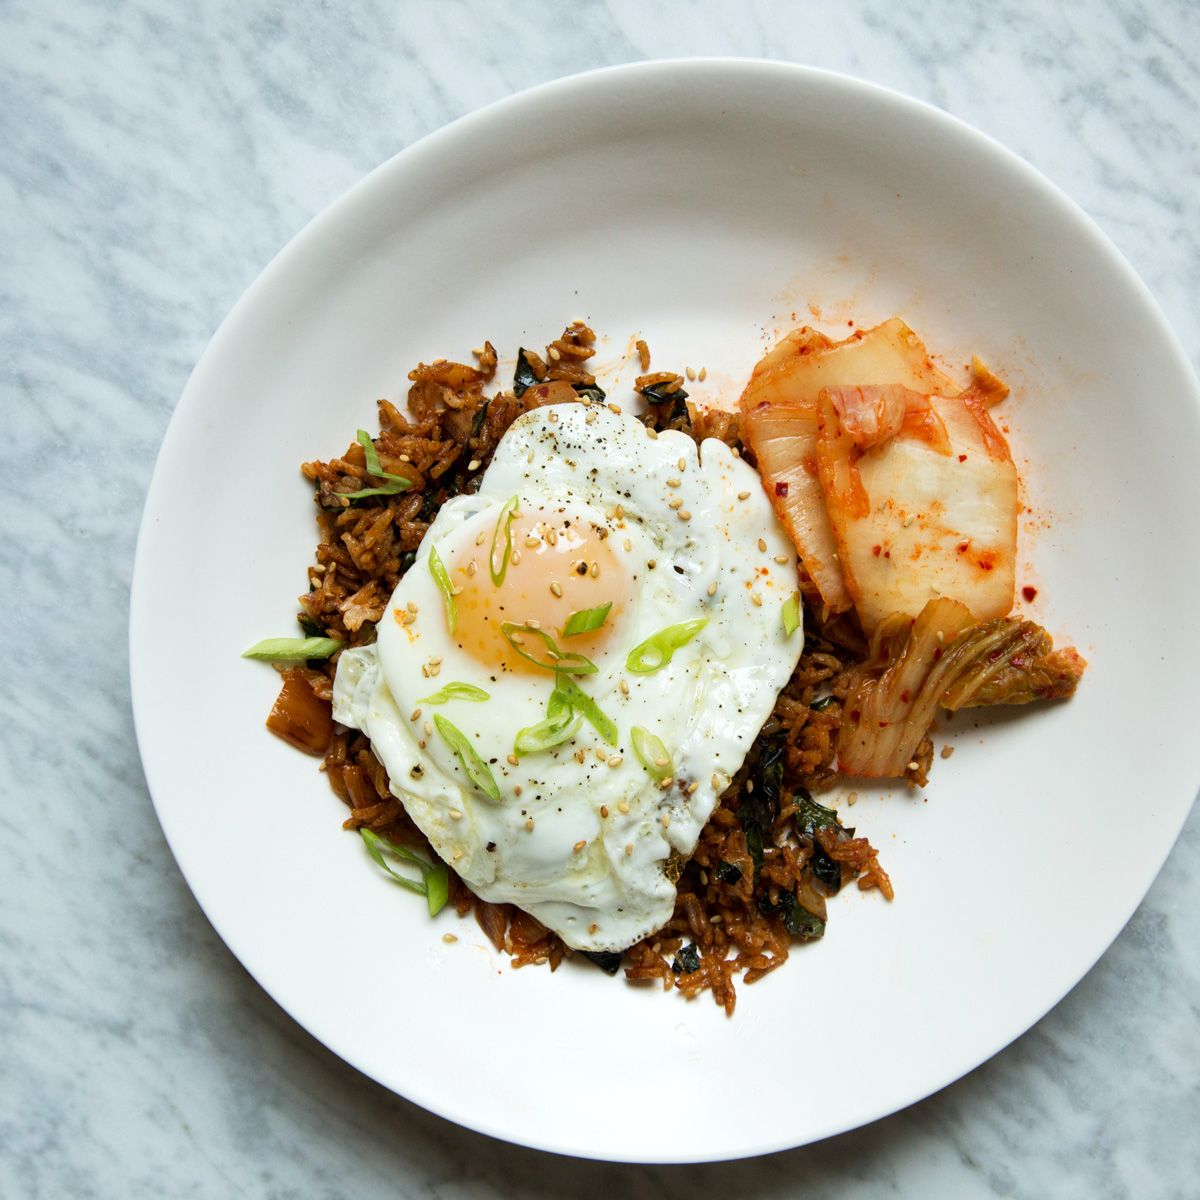 Kimchi and kale fried rice recipe fried rice kimchi and kale kimchi and kale fried rice ccuart Gallery